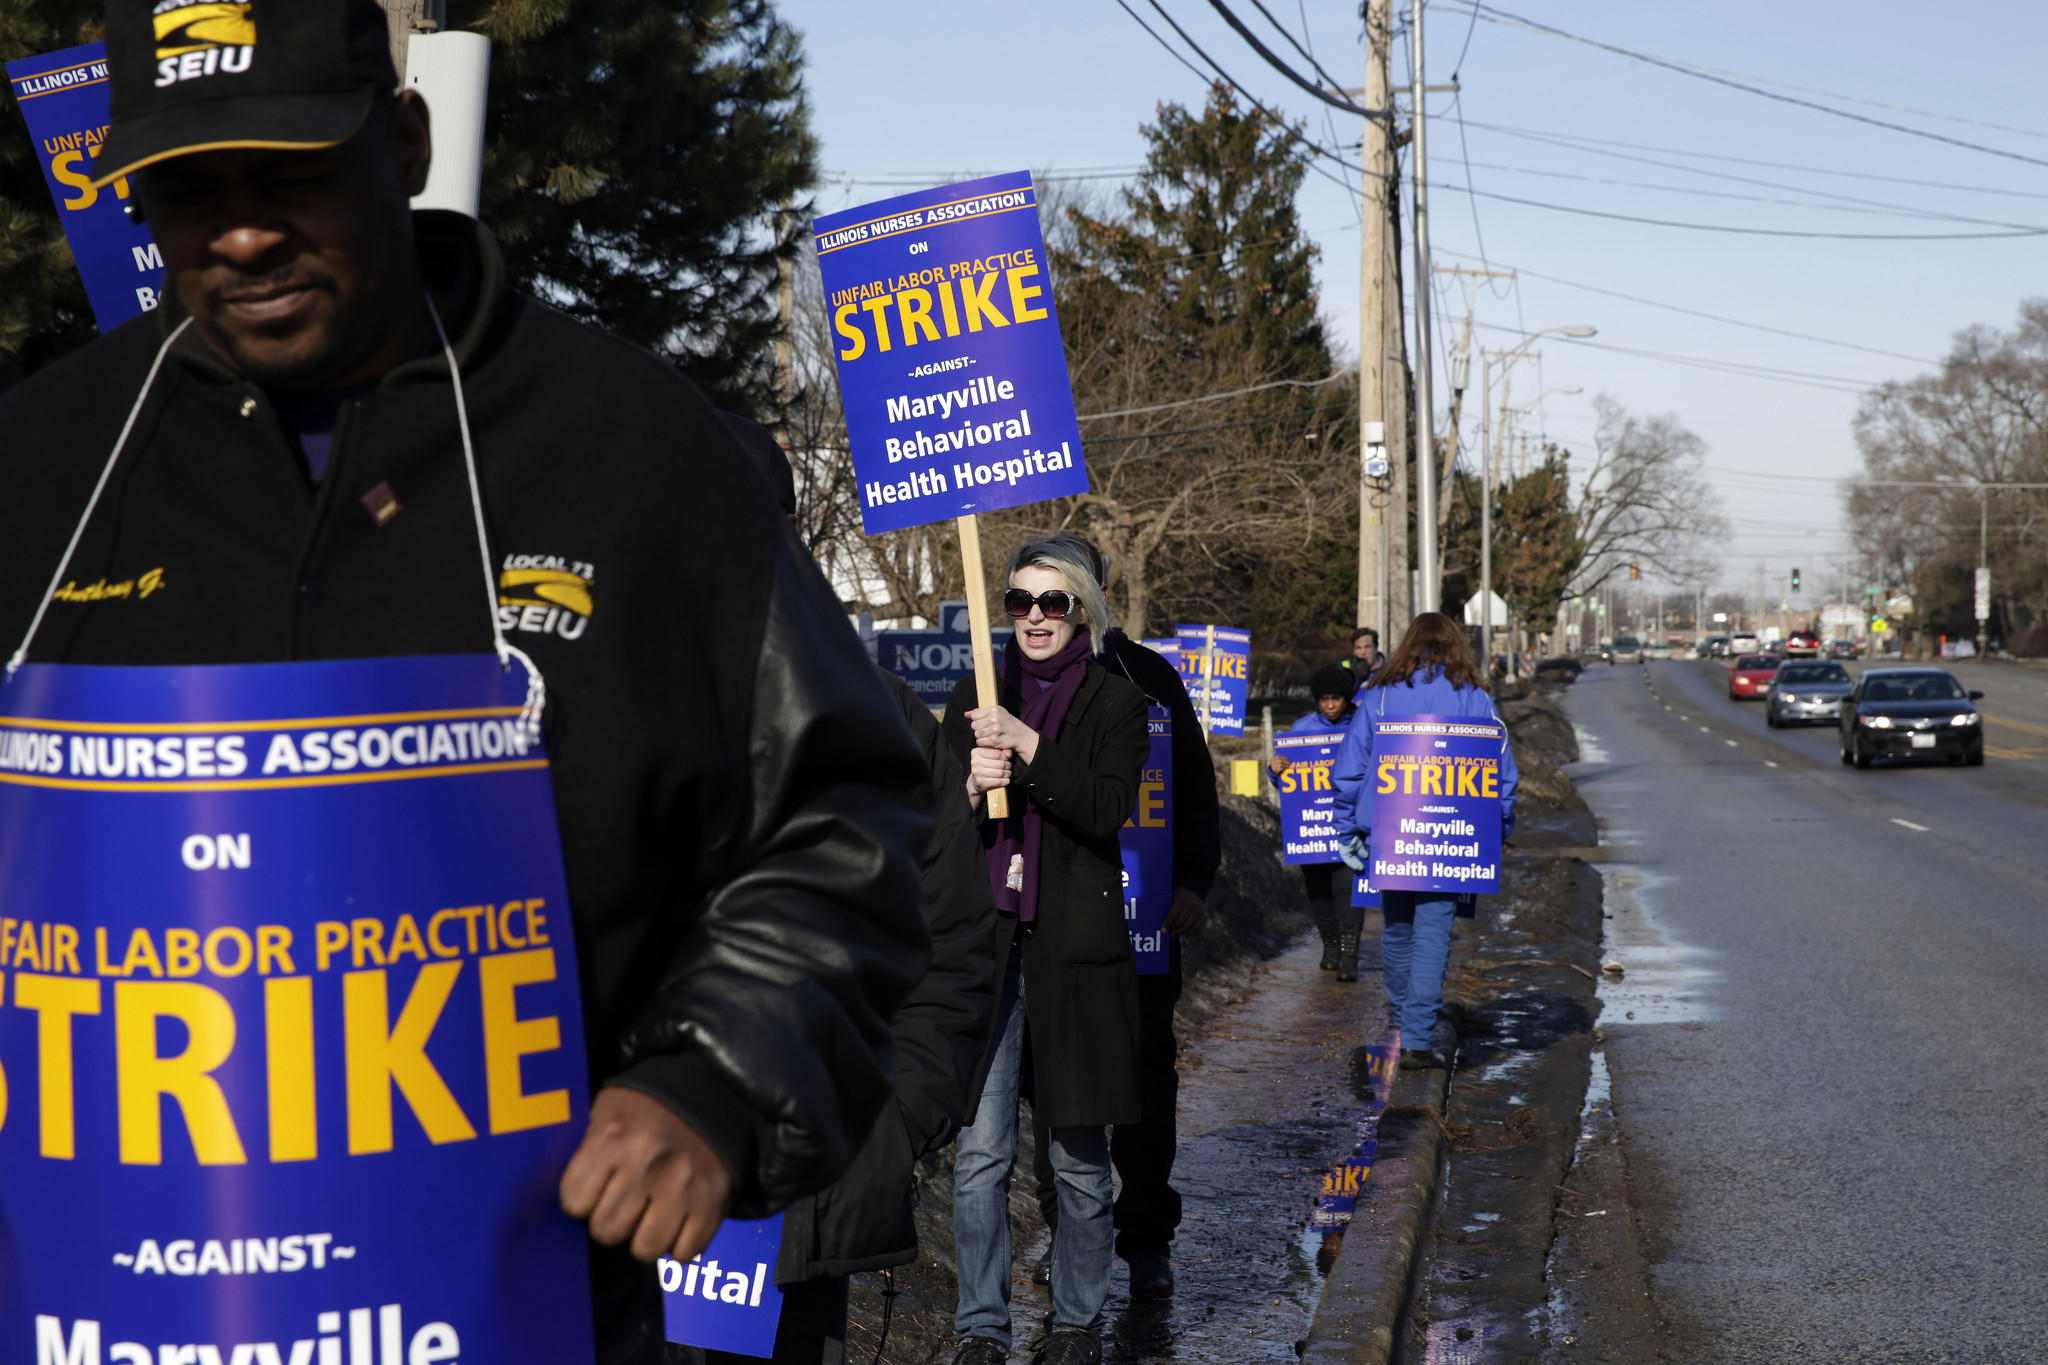 Nurses and strike supporters picket outside of Maryville Academy Behavioral Health Hospital in Des Plaines.